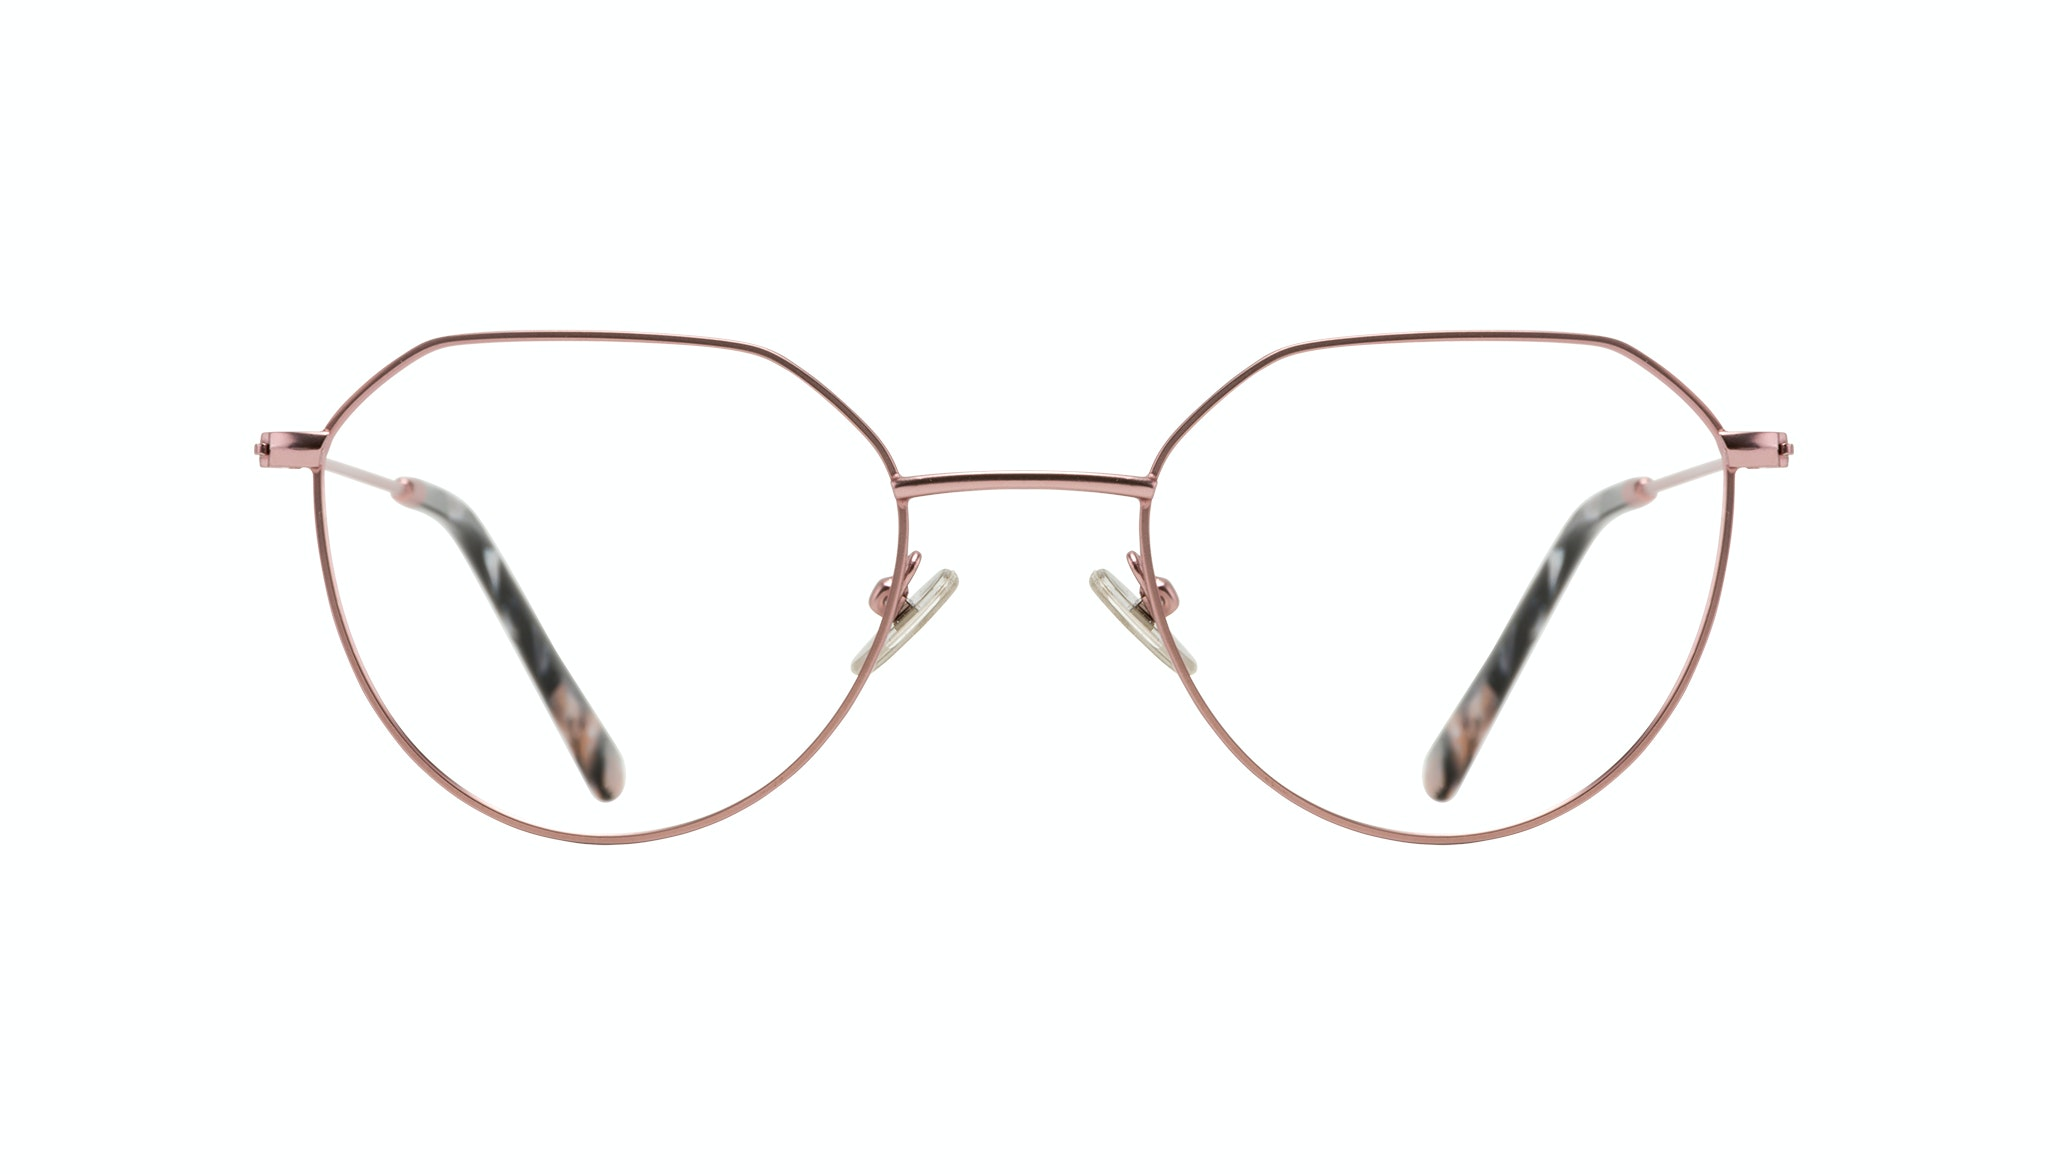 Affordable Fashion Glasses Round Eyeglasses Women Prism Blush Front